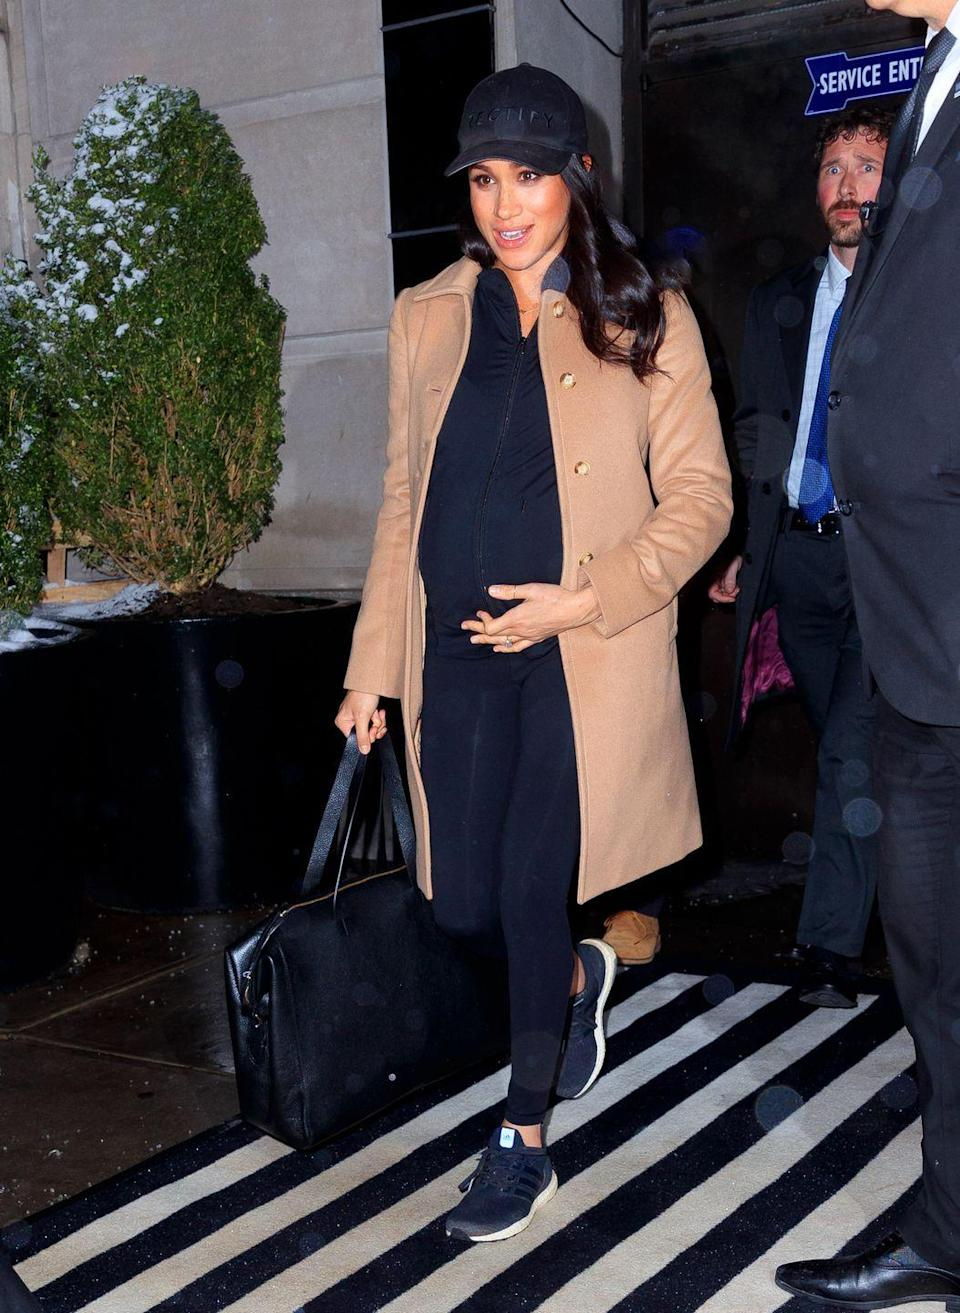 """<p>Meghan Markle wore a camel coat over her black atheleisure outfit that she paired with a black baseball cap, sneakers, and a leather <a href=""""https://go.redirectingat.com?id=74968X1596630&url=https%3A%2F%2Fwww.cuyana.com%2Fle-sud-leather-weekender.html&sref=https%3A%2F%2Fwww.townandcountrymag.com%2Fstyle%2Ffashion-trends%2Fg3272%2Fmeghan-markle-preppy-style%2F"""" rel=""""nofollow noopener"""" target=""""_blank"""" data-ylk=""""slk:weekender by Cuyana"""" class=""""link rapid-noclick-resp"""">weekender by Cuyana</a>, as she left the Mark Hotel for the airport. The Duchess has been in New York for the past five days to <a href=""""https://www.townandcountrymag.com/society/tradition/a26409579/meghan-markle-baby-shower-details/"""" rel=""""nofollow noopener"""" target=""""_blank"""" data-ylk=""""slk:celebrate her baby shower"""" class=""""link rapid-noclick-resp"""">celebrate her baby shower</a> with close friends. </p><p><a class=""""link rapid-noclick-resp"""" href=""""https://go.redirectingat.com?id=74968X1596630&url=https%3A%2F%2Fwww.cuyana.com%2Fle-sud-leather-weekender.html&sref=https%3A%2F%2Fwww.townandcountrymag.com%2Fstyle%2Ffashion-trends%2Fg3272%2Fmeghan-markle-preppy-style%2F"""" rel=""""nofollow noopener"""" target=""""_blank"""" data-ylk=""""slk:SHOP NOW"""">SHOP NOW</a> <em>Cuyana Weekender Bag, $395</em></p>"""